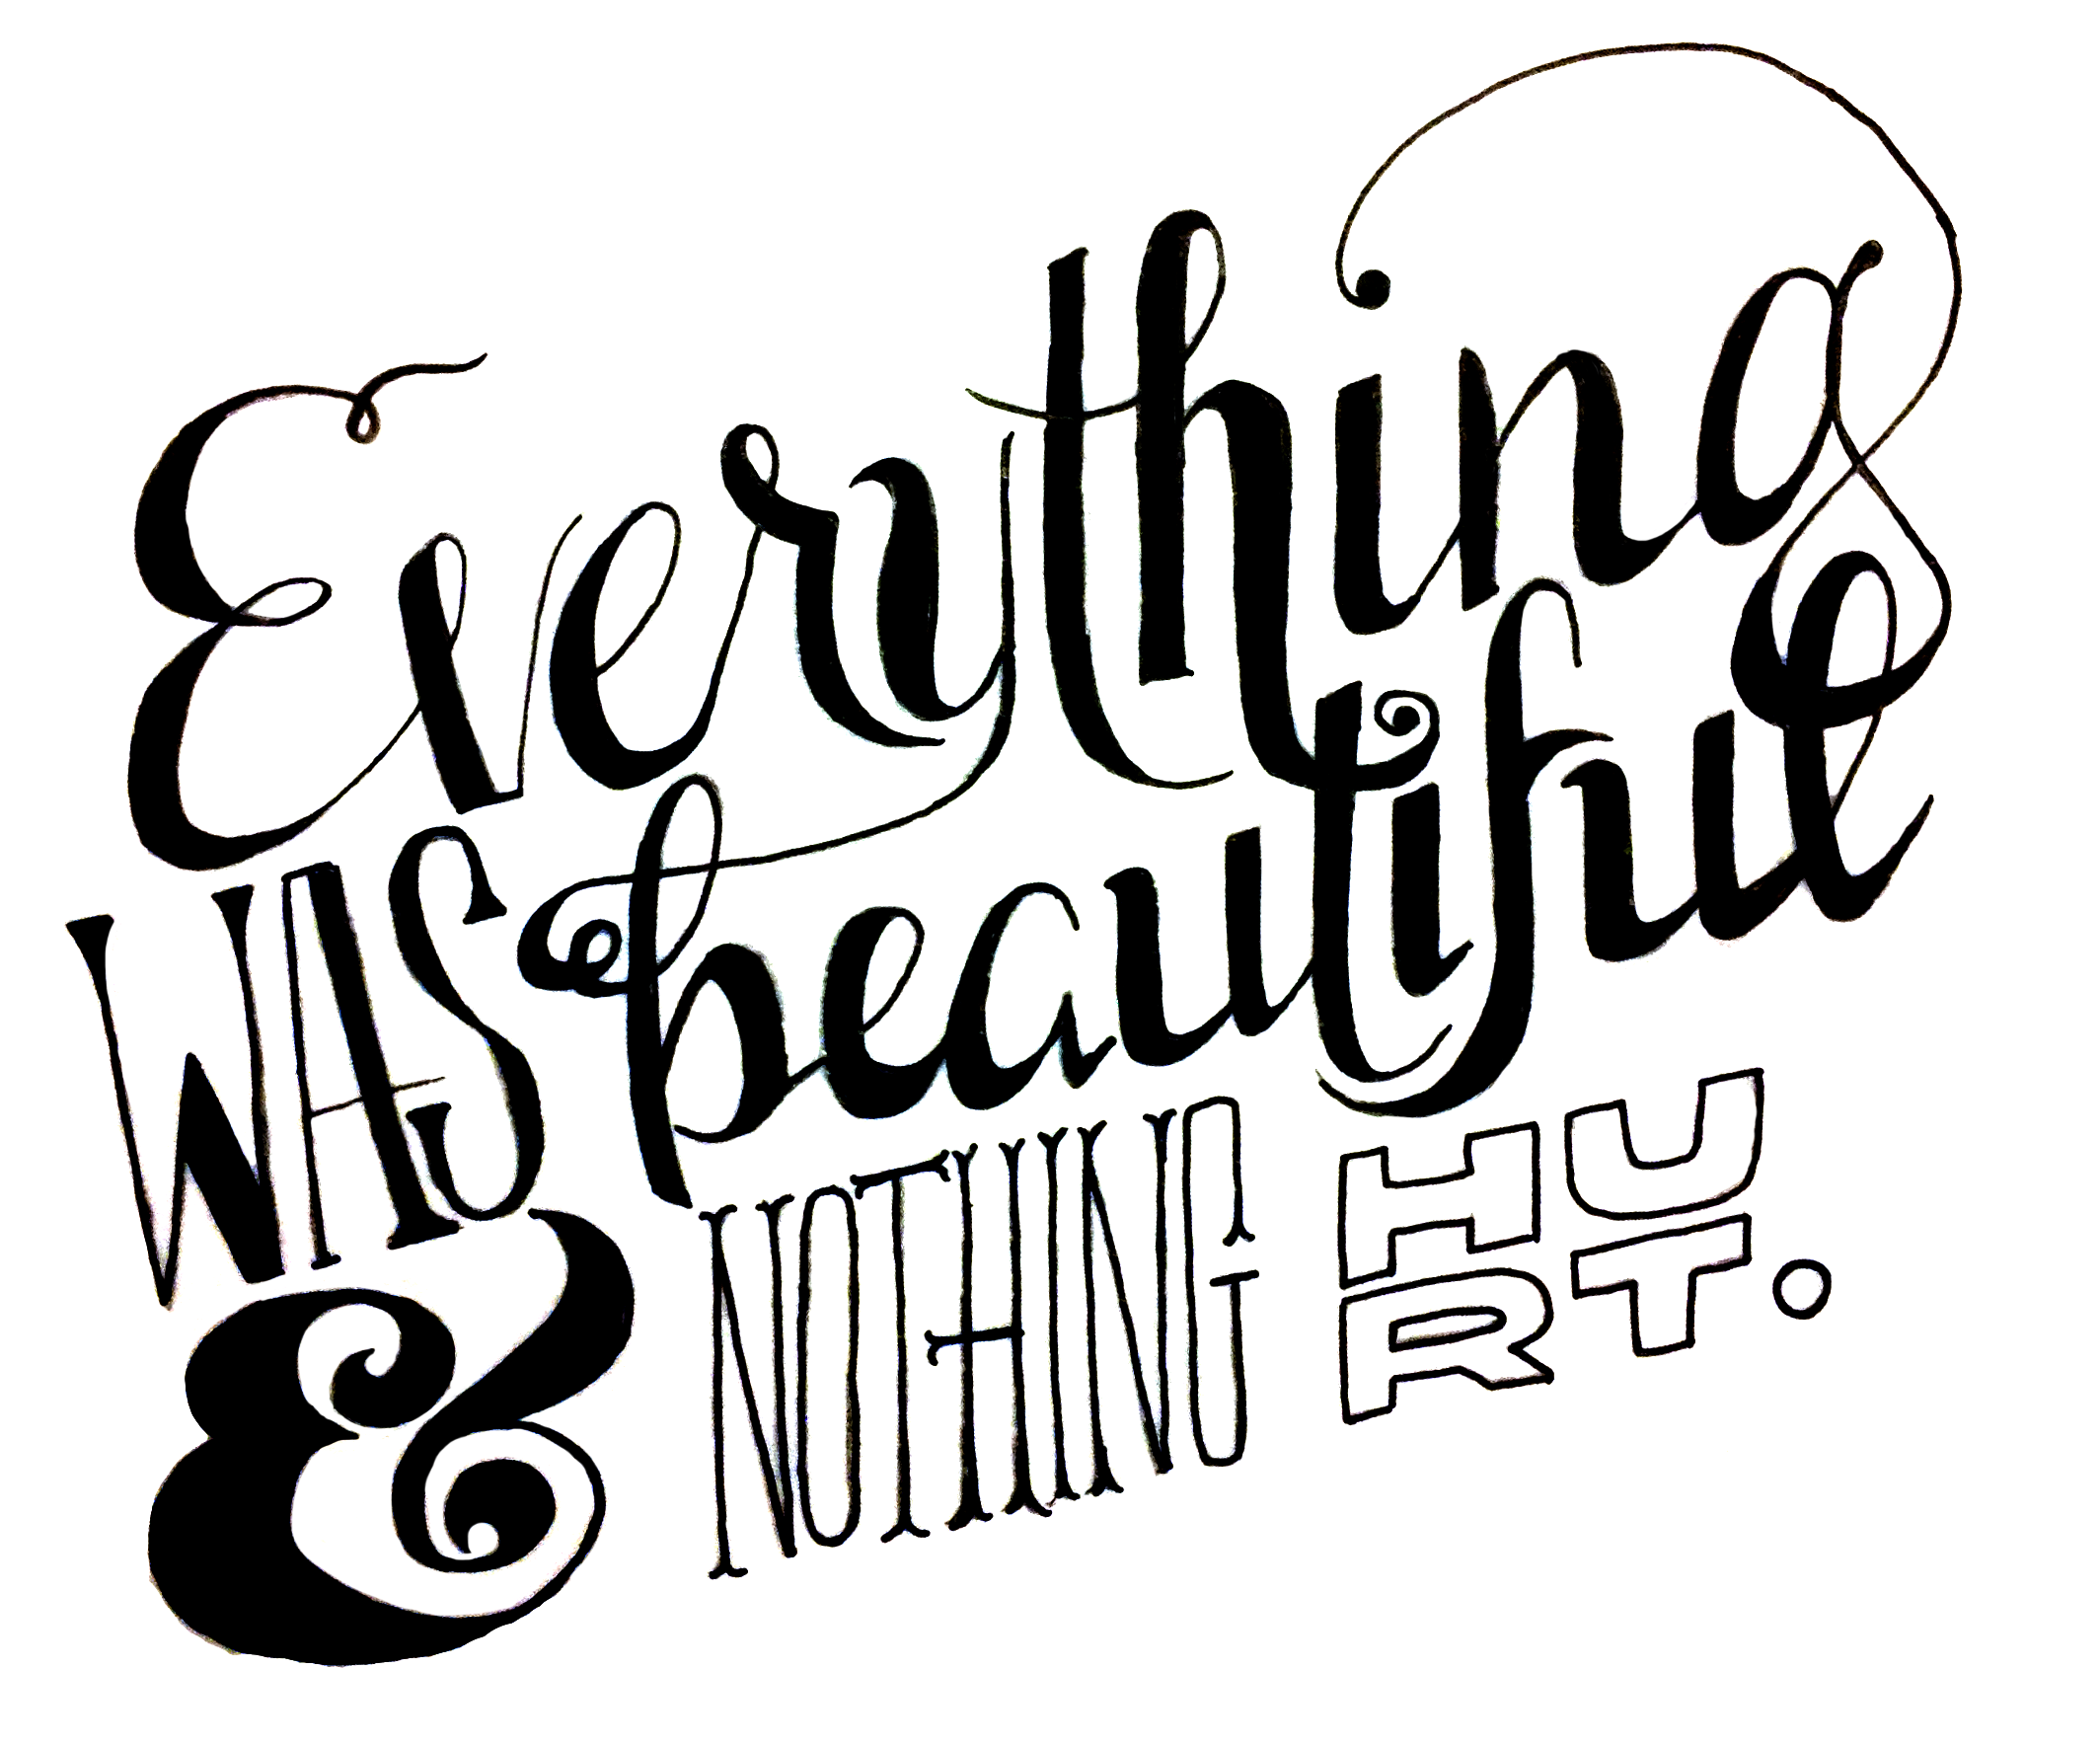 Everything was beautiful & nothing hurt. - image 2 - student project